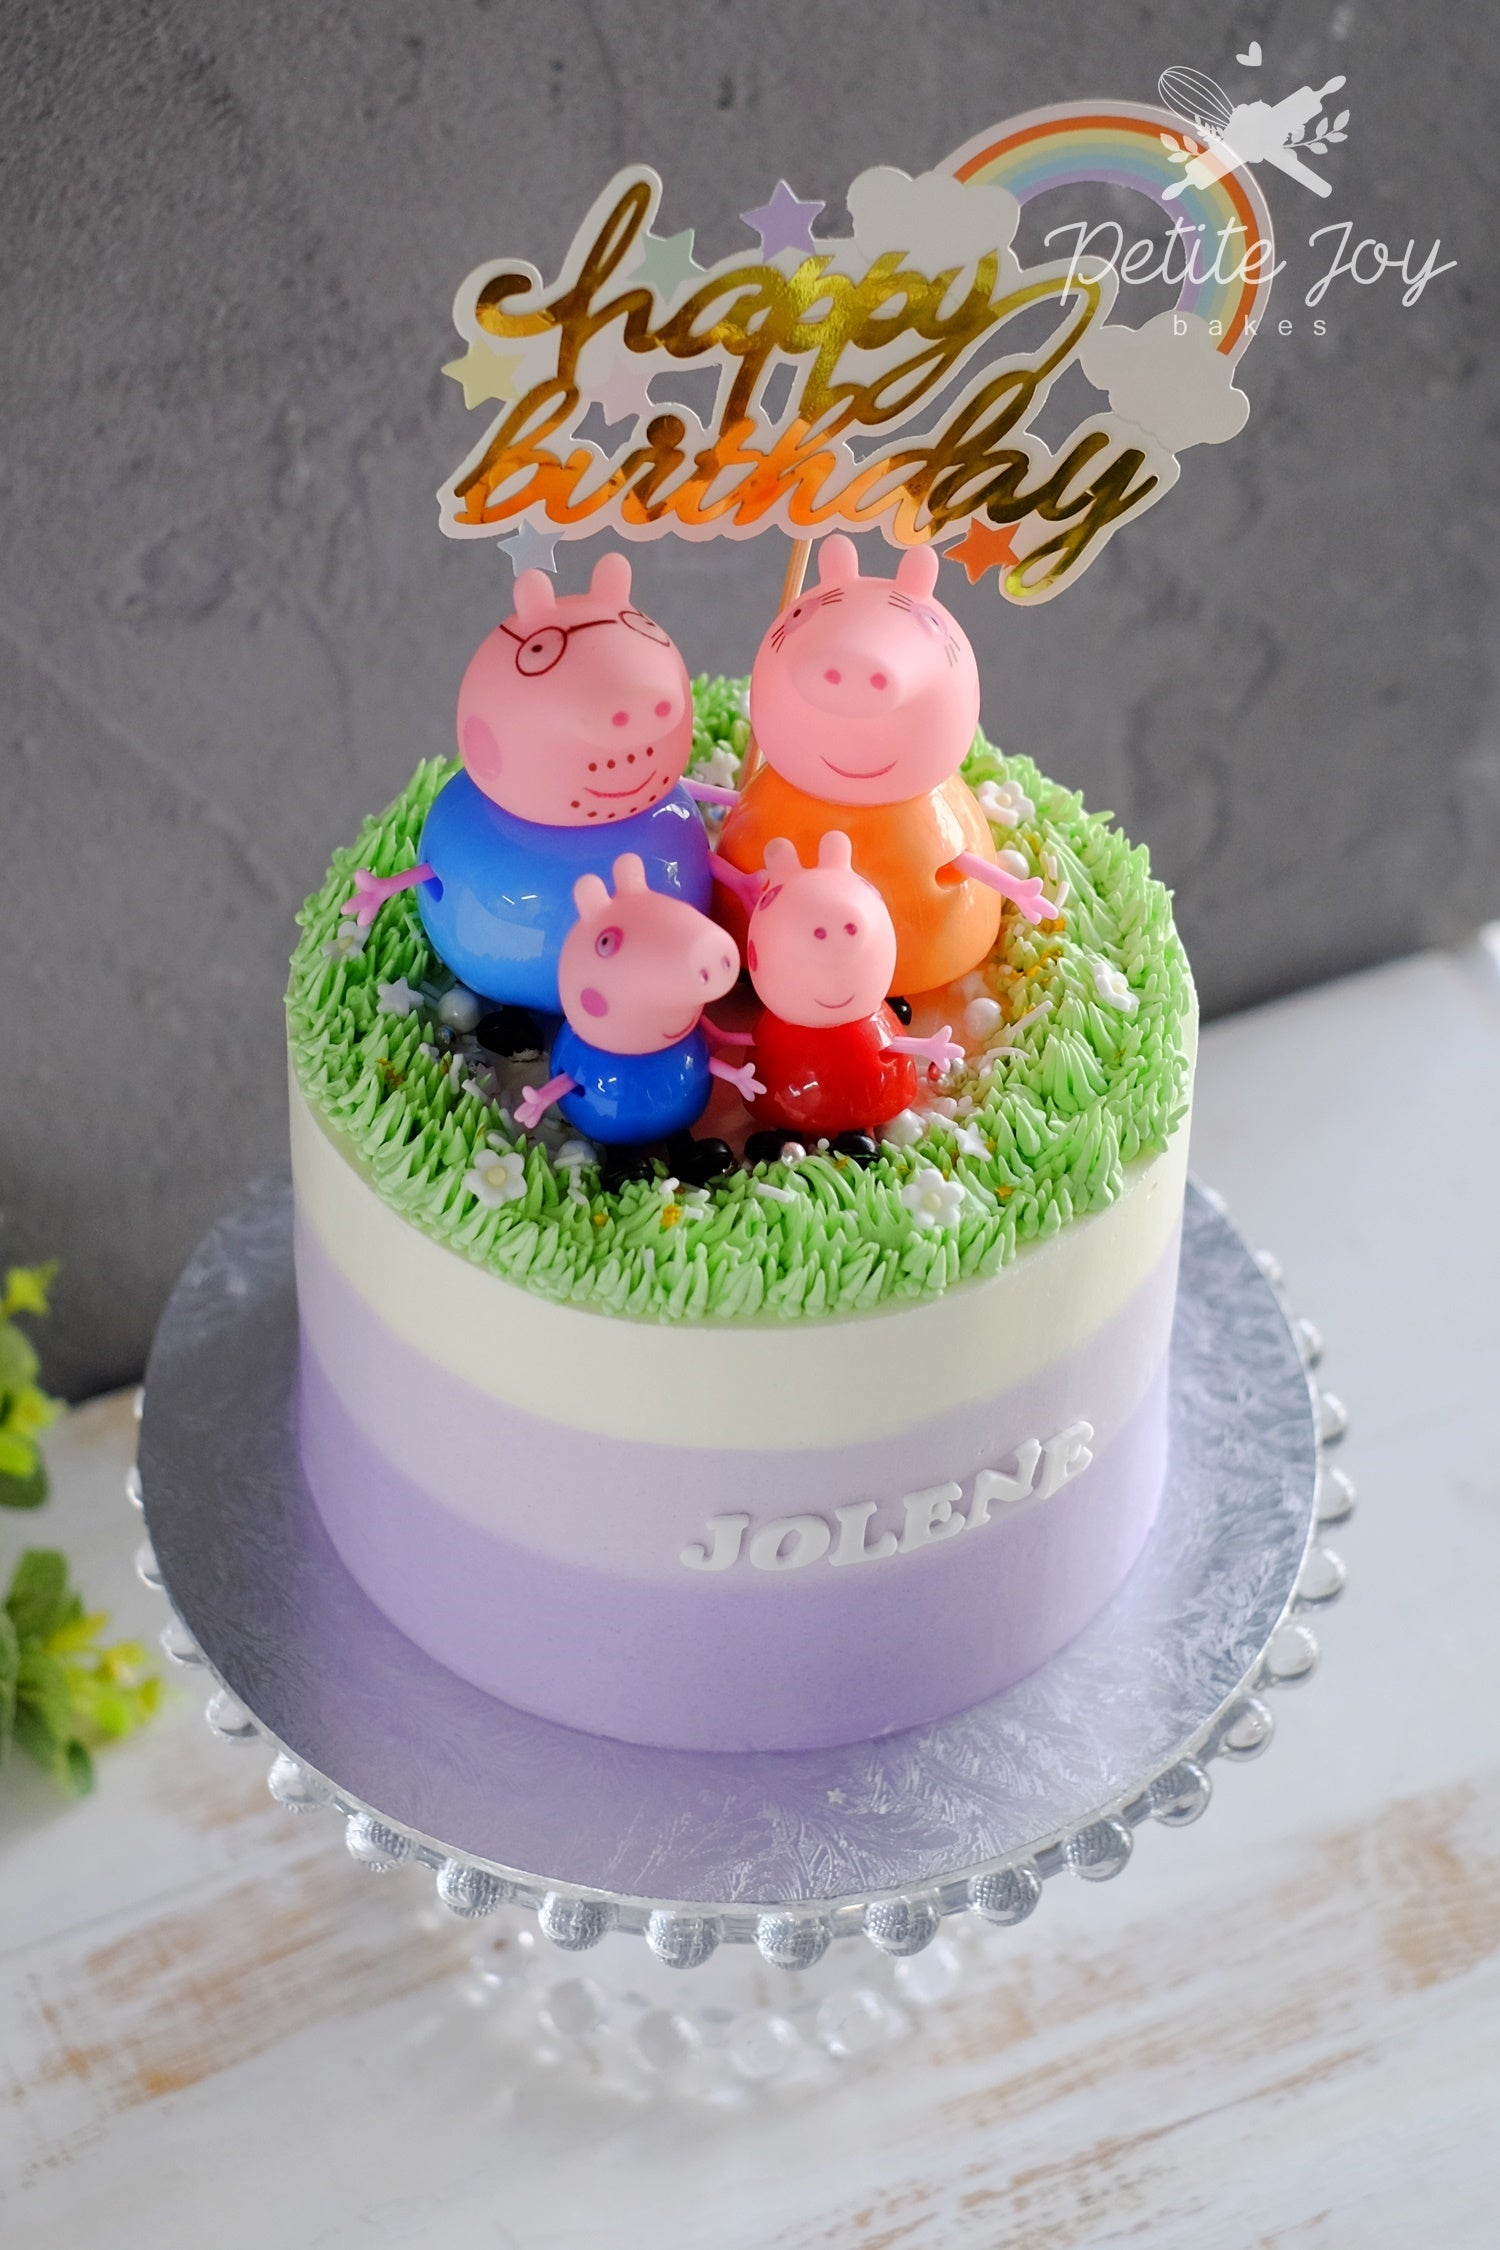 Peppa Pig Cake (Other Colors Available)